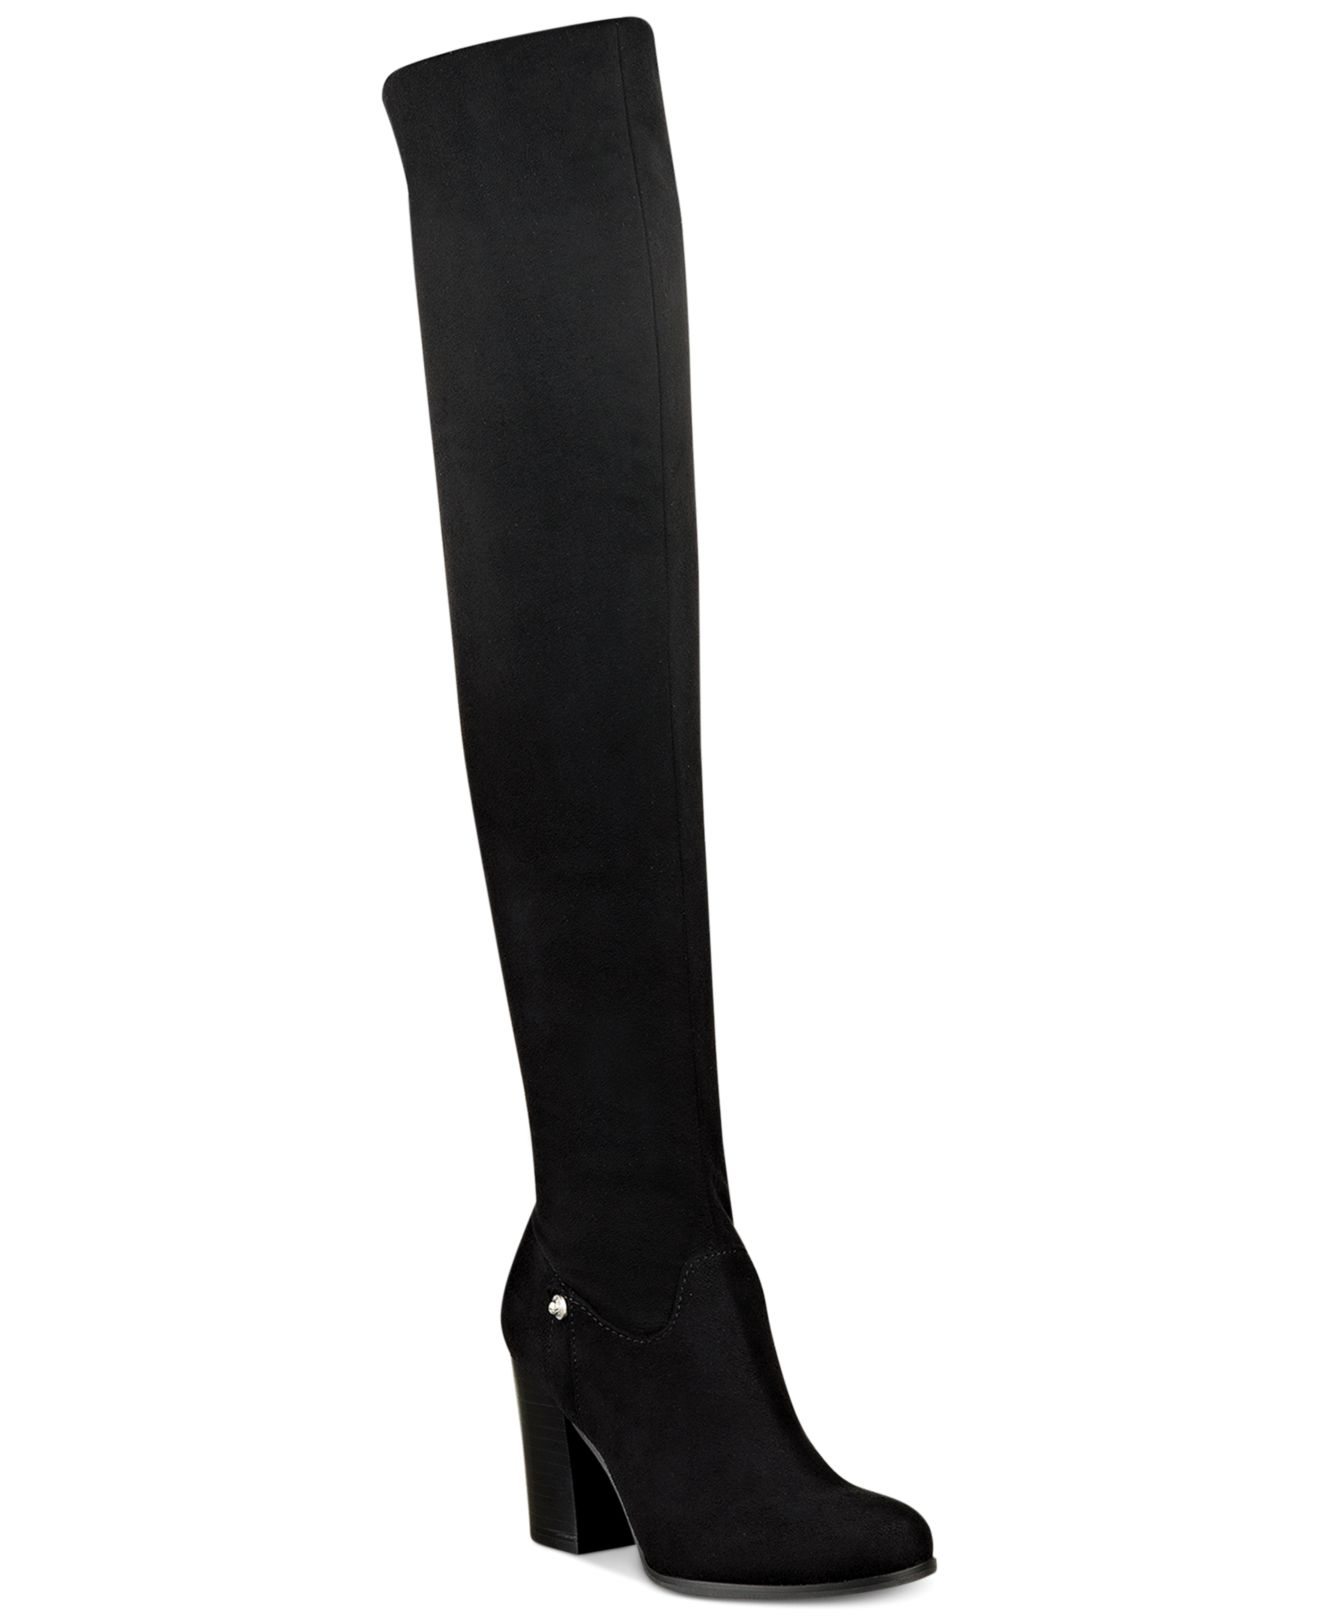 a5542d21fa9 Lyst - Guess Dandra Convertible Over The Knee Boots in Black